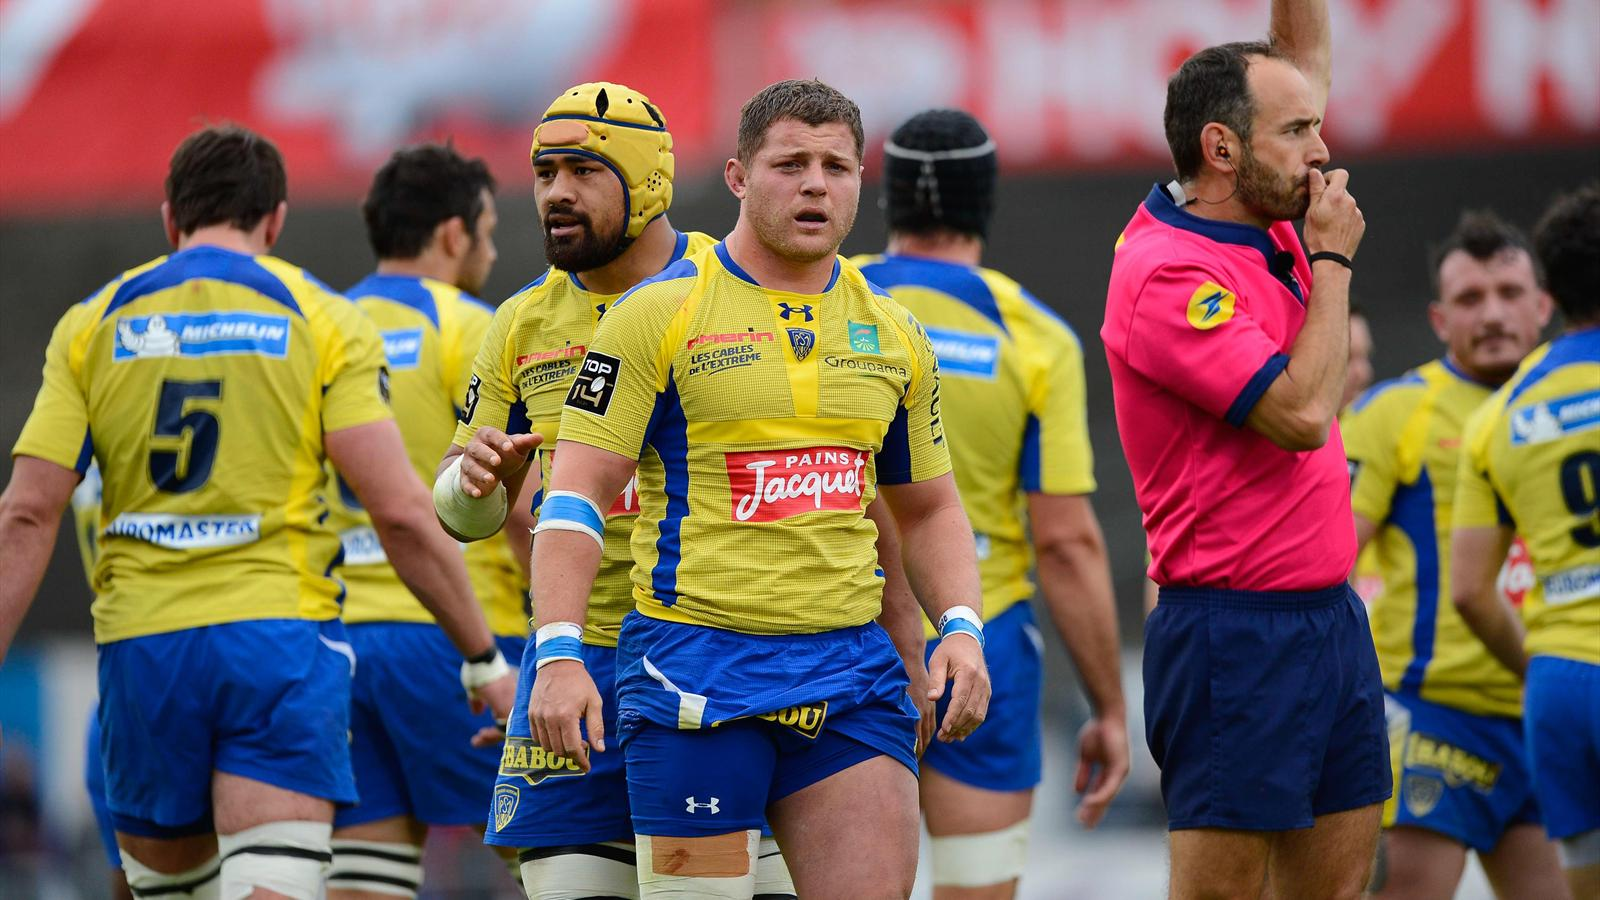 Benjamin Kayser - Racing-Clermont - 19 avril 2014